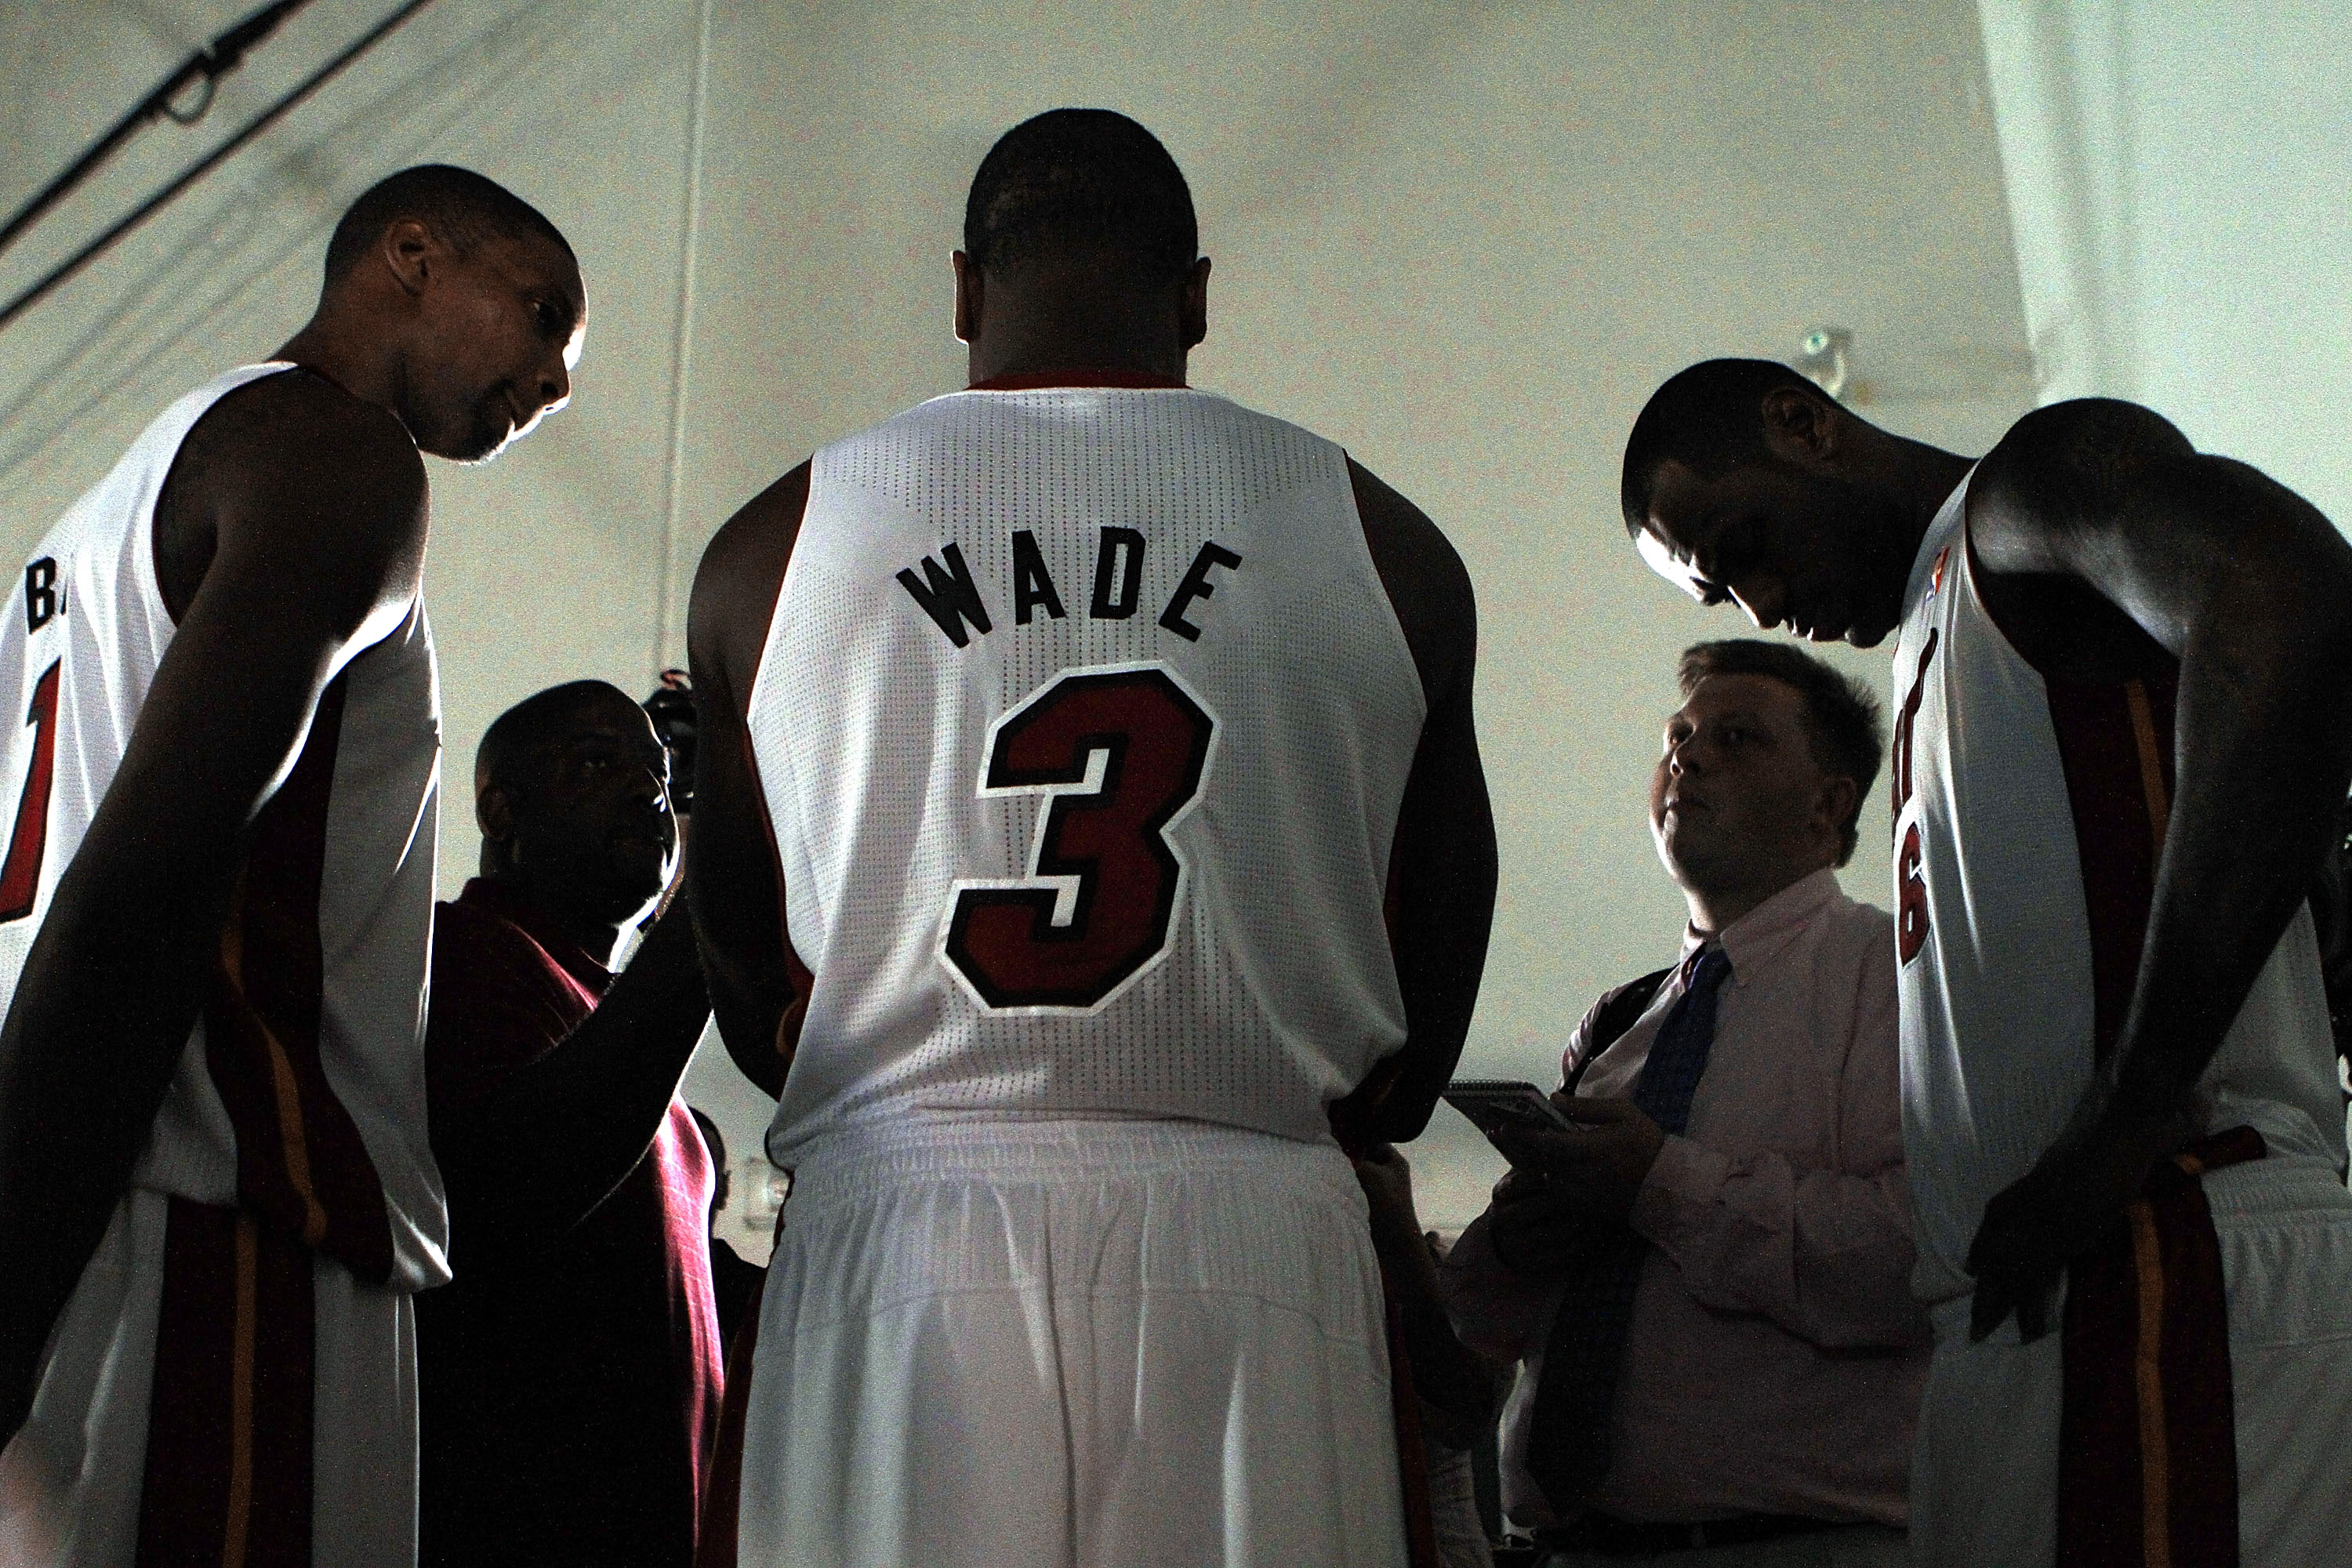 MIAMI - SEPTEMBER 27:  Dwyane Wade (C) of the Miami Heat is flanked by teammates Chris Bosh (L) and LeBron James (R) as they answer questions during media day at the Bank United Center on September 27, 2010 in Miami, Florida. NOTE TO USER: User expressly